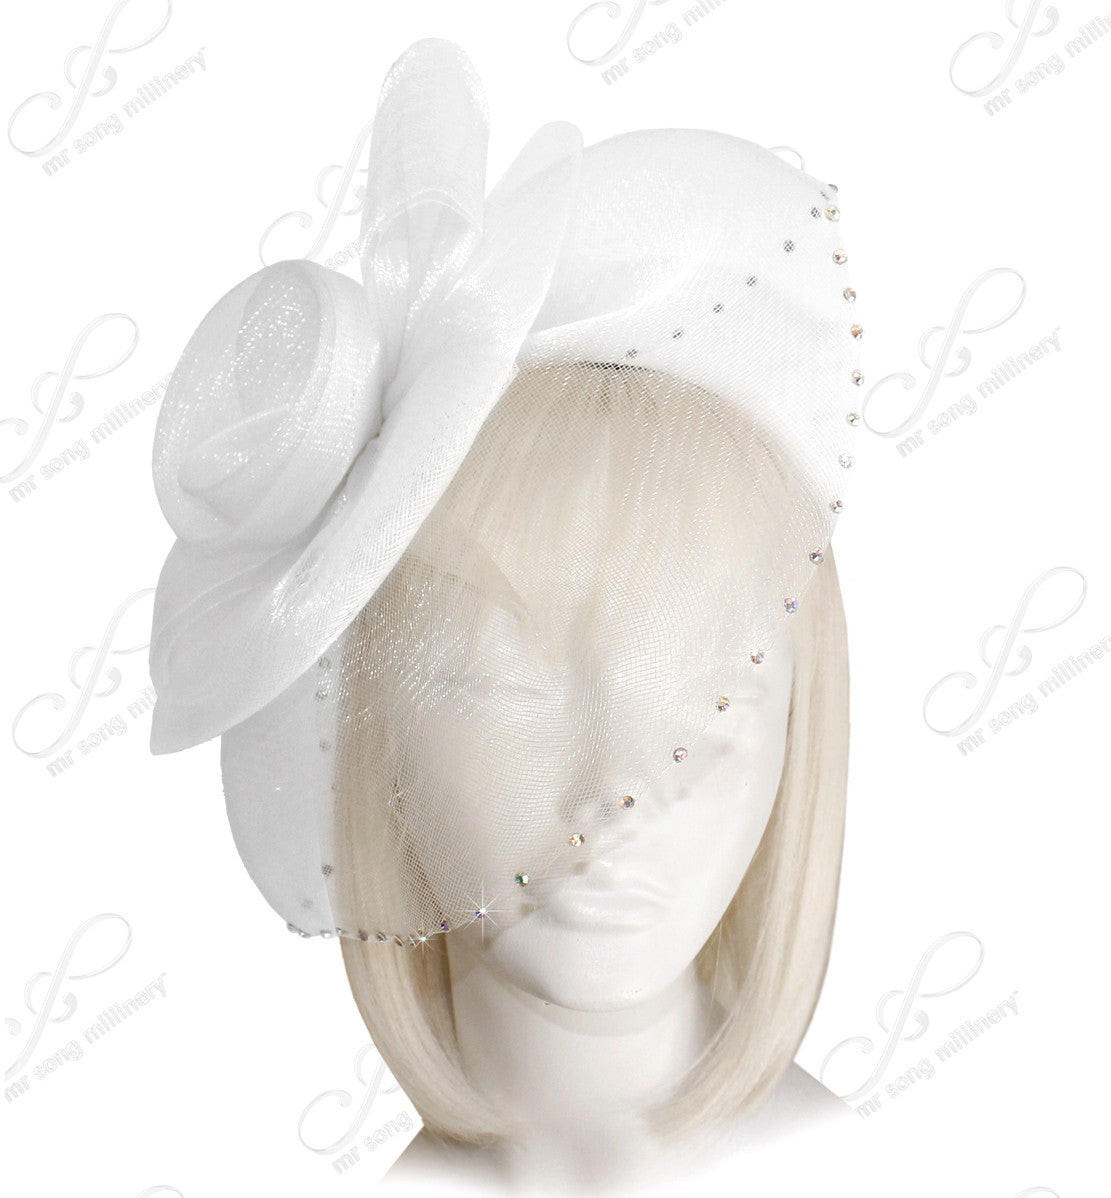 Mr. Song Millinery All-Season Crin Bridal Veil Fascinator Headpiece - White